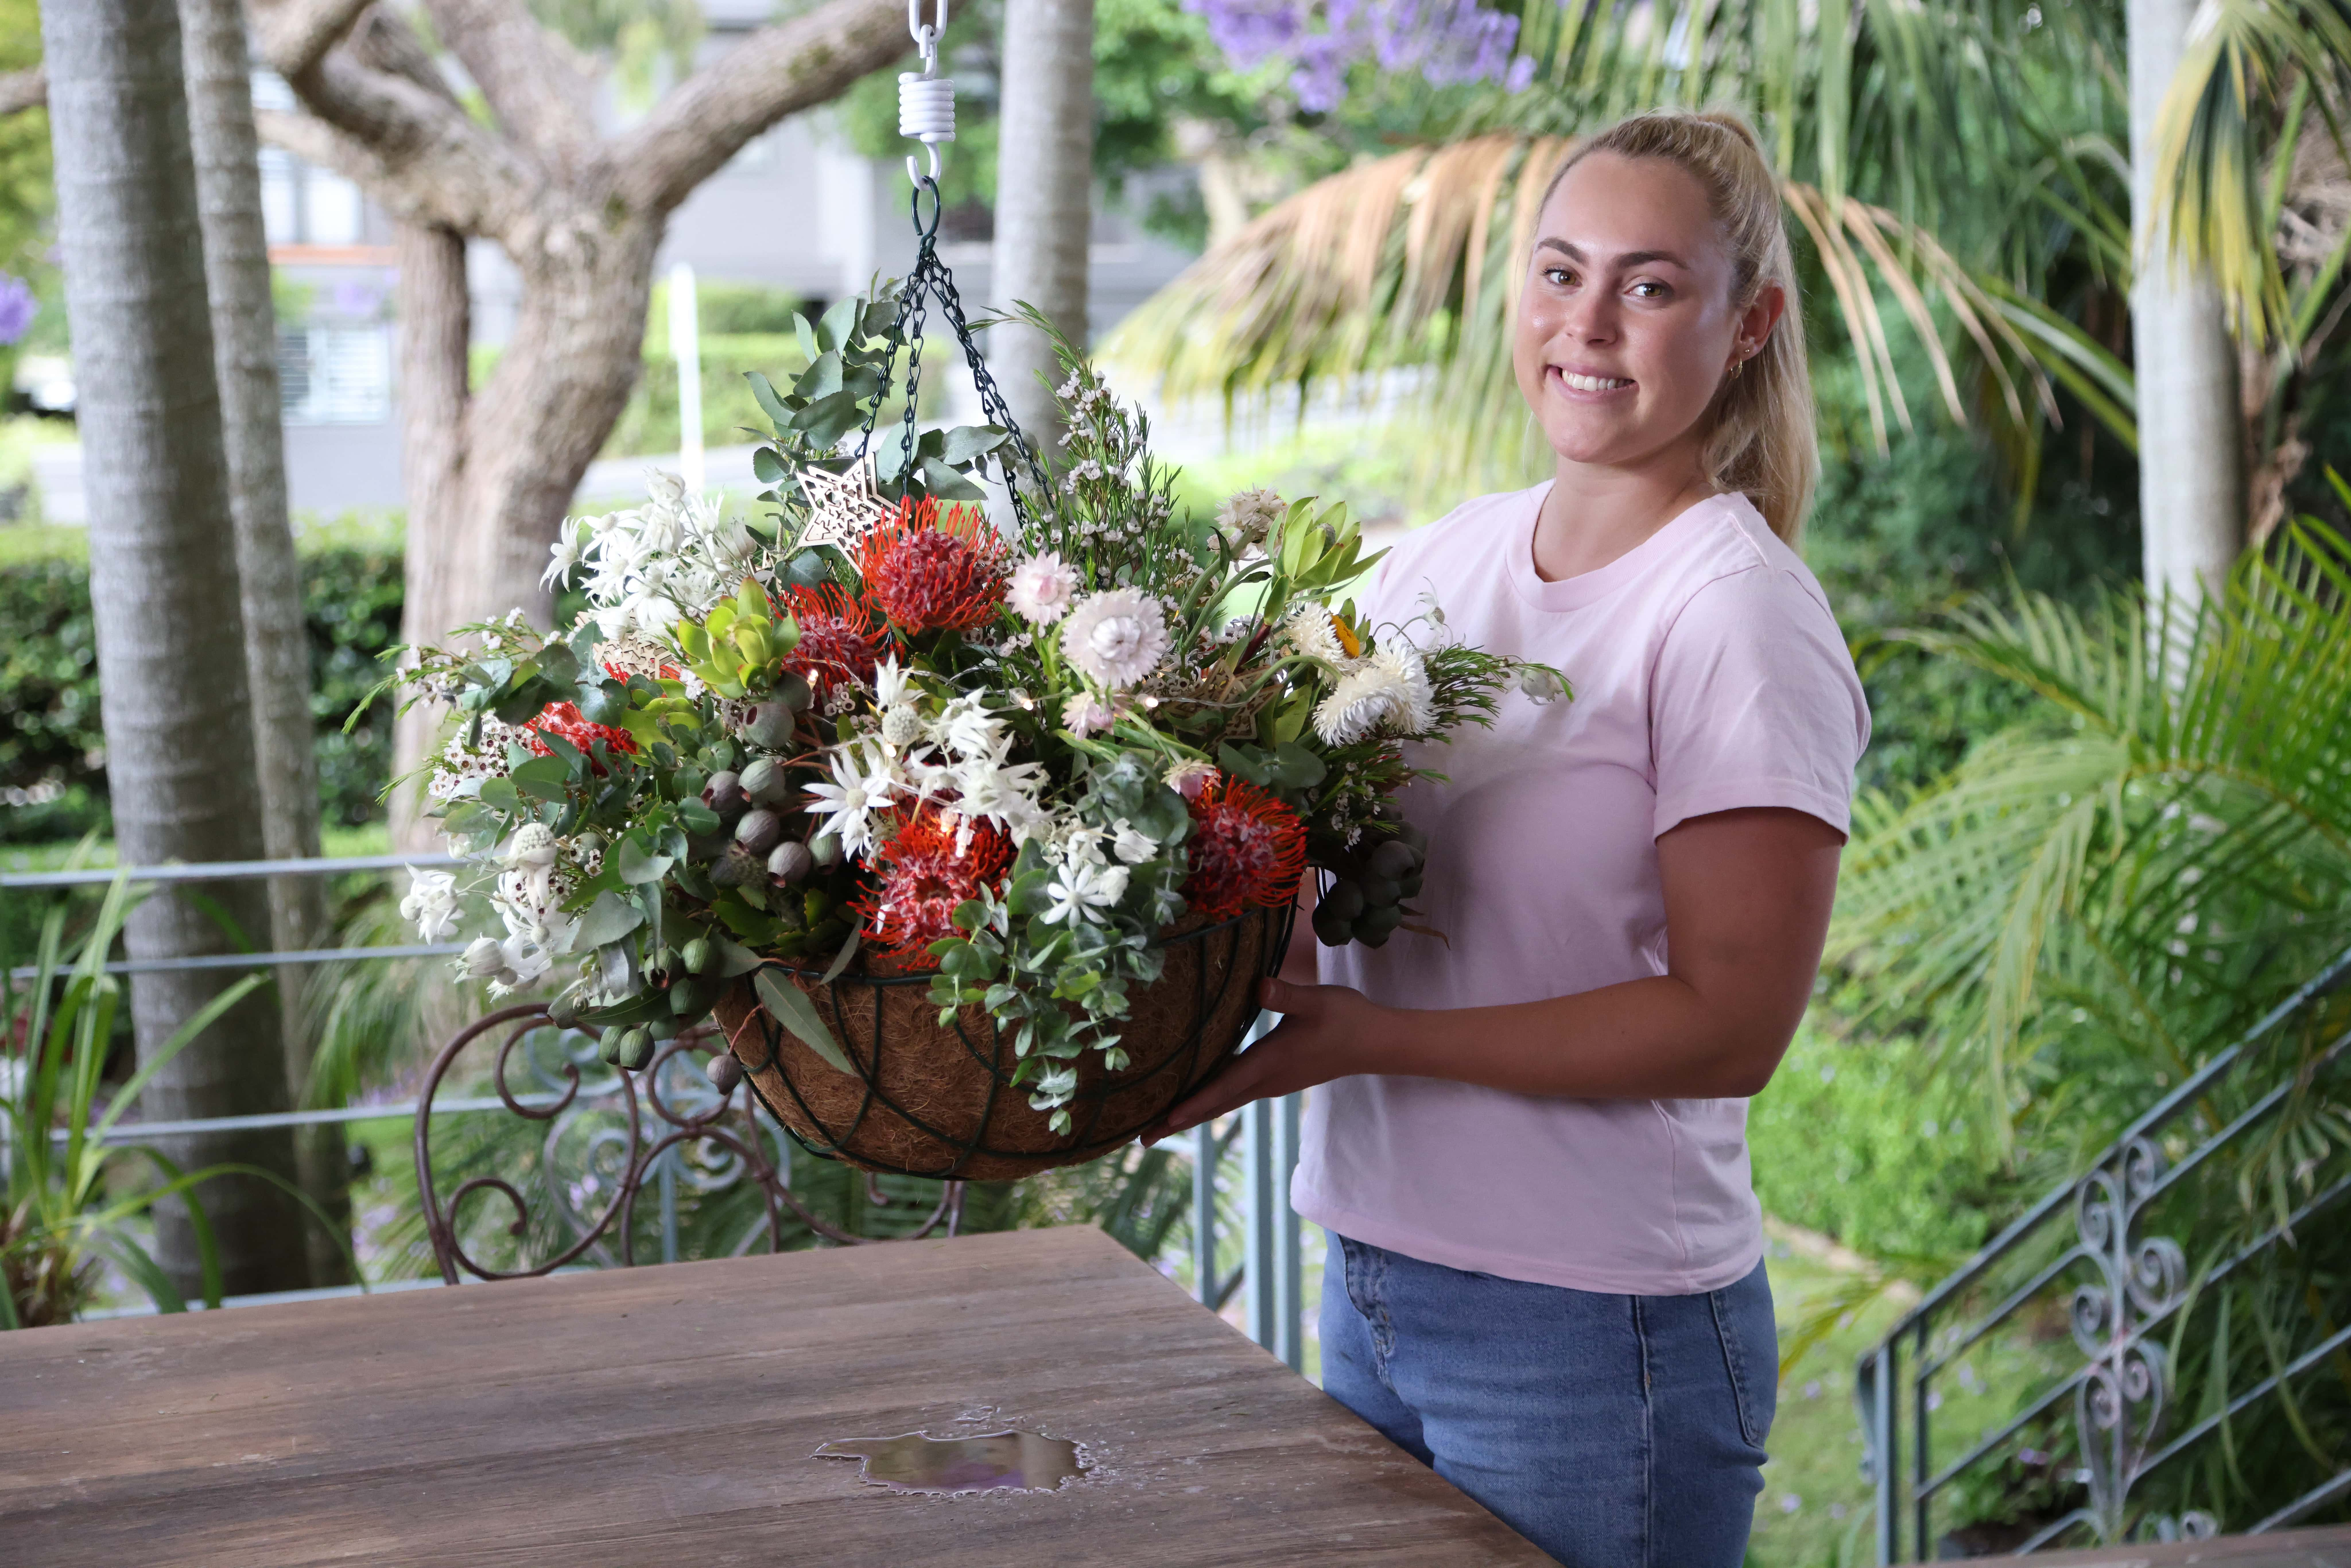 a woman carrying a festive hanging basket